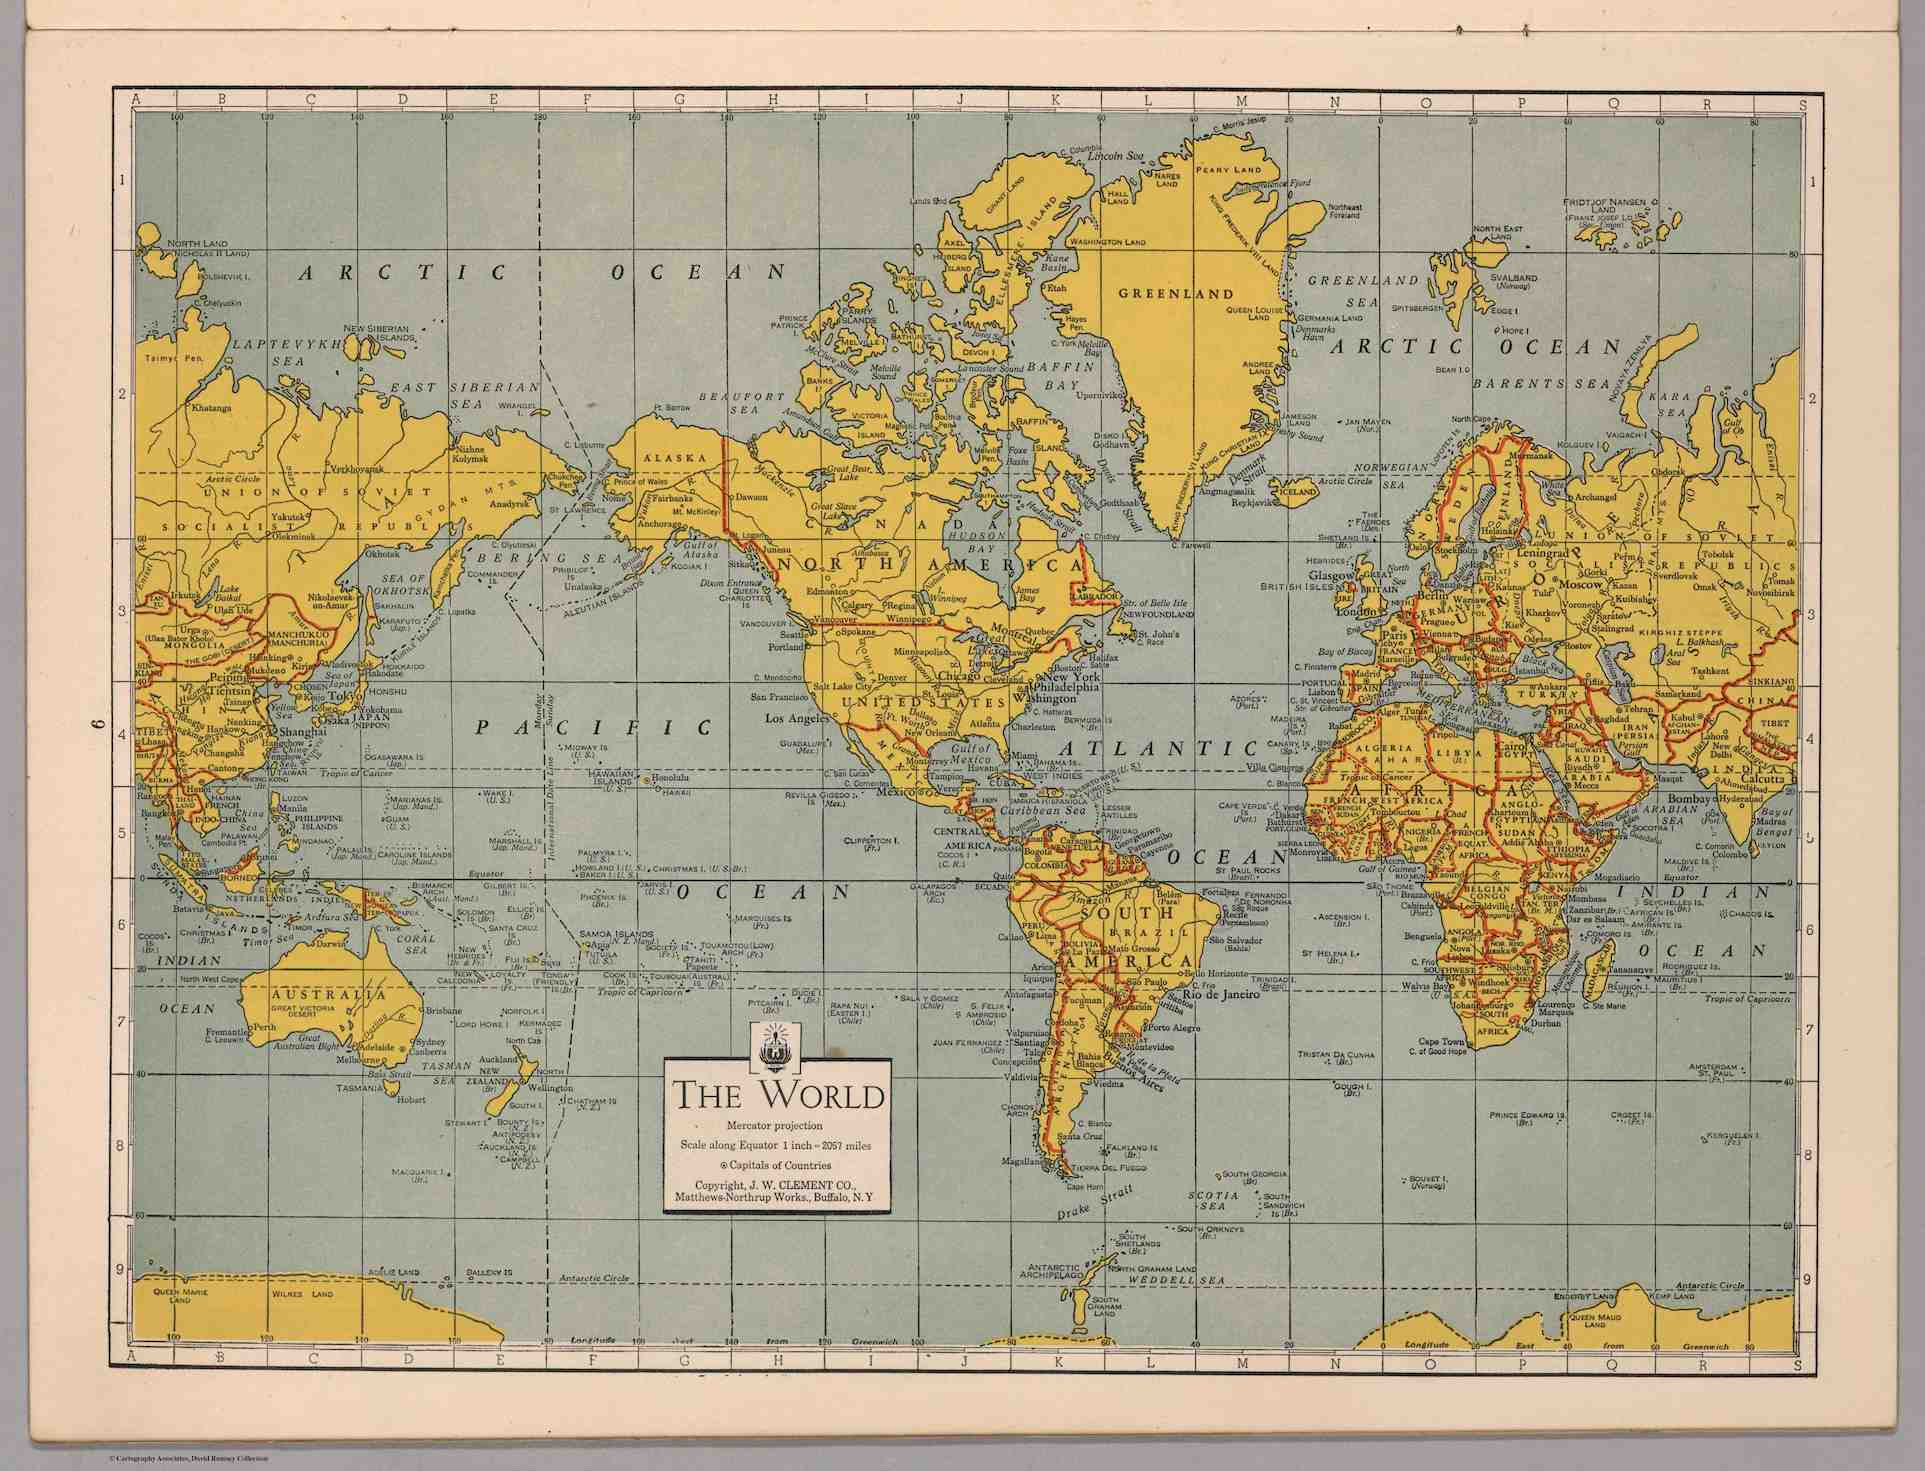 World War Ii Led To A Revolution In Cartography These